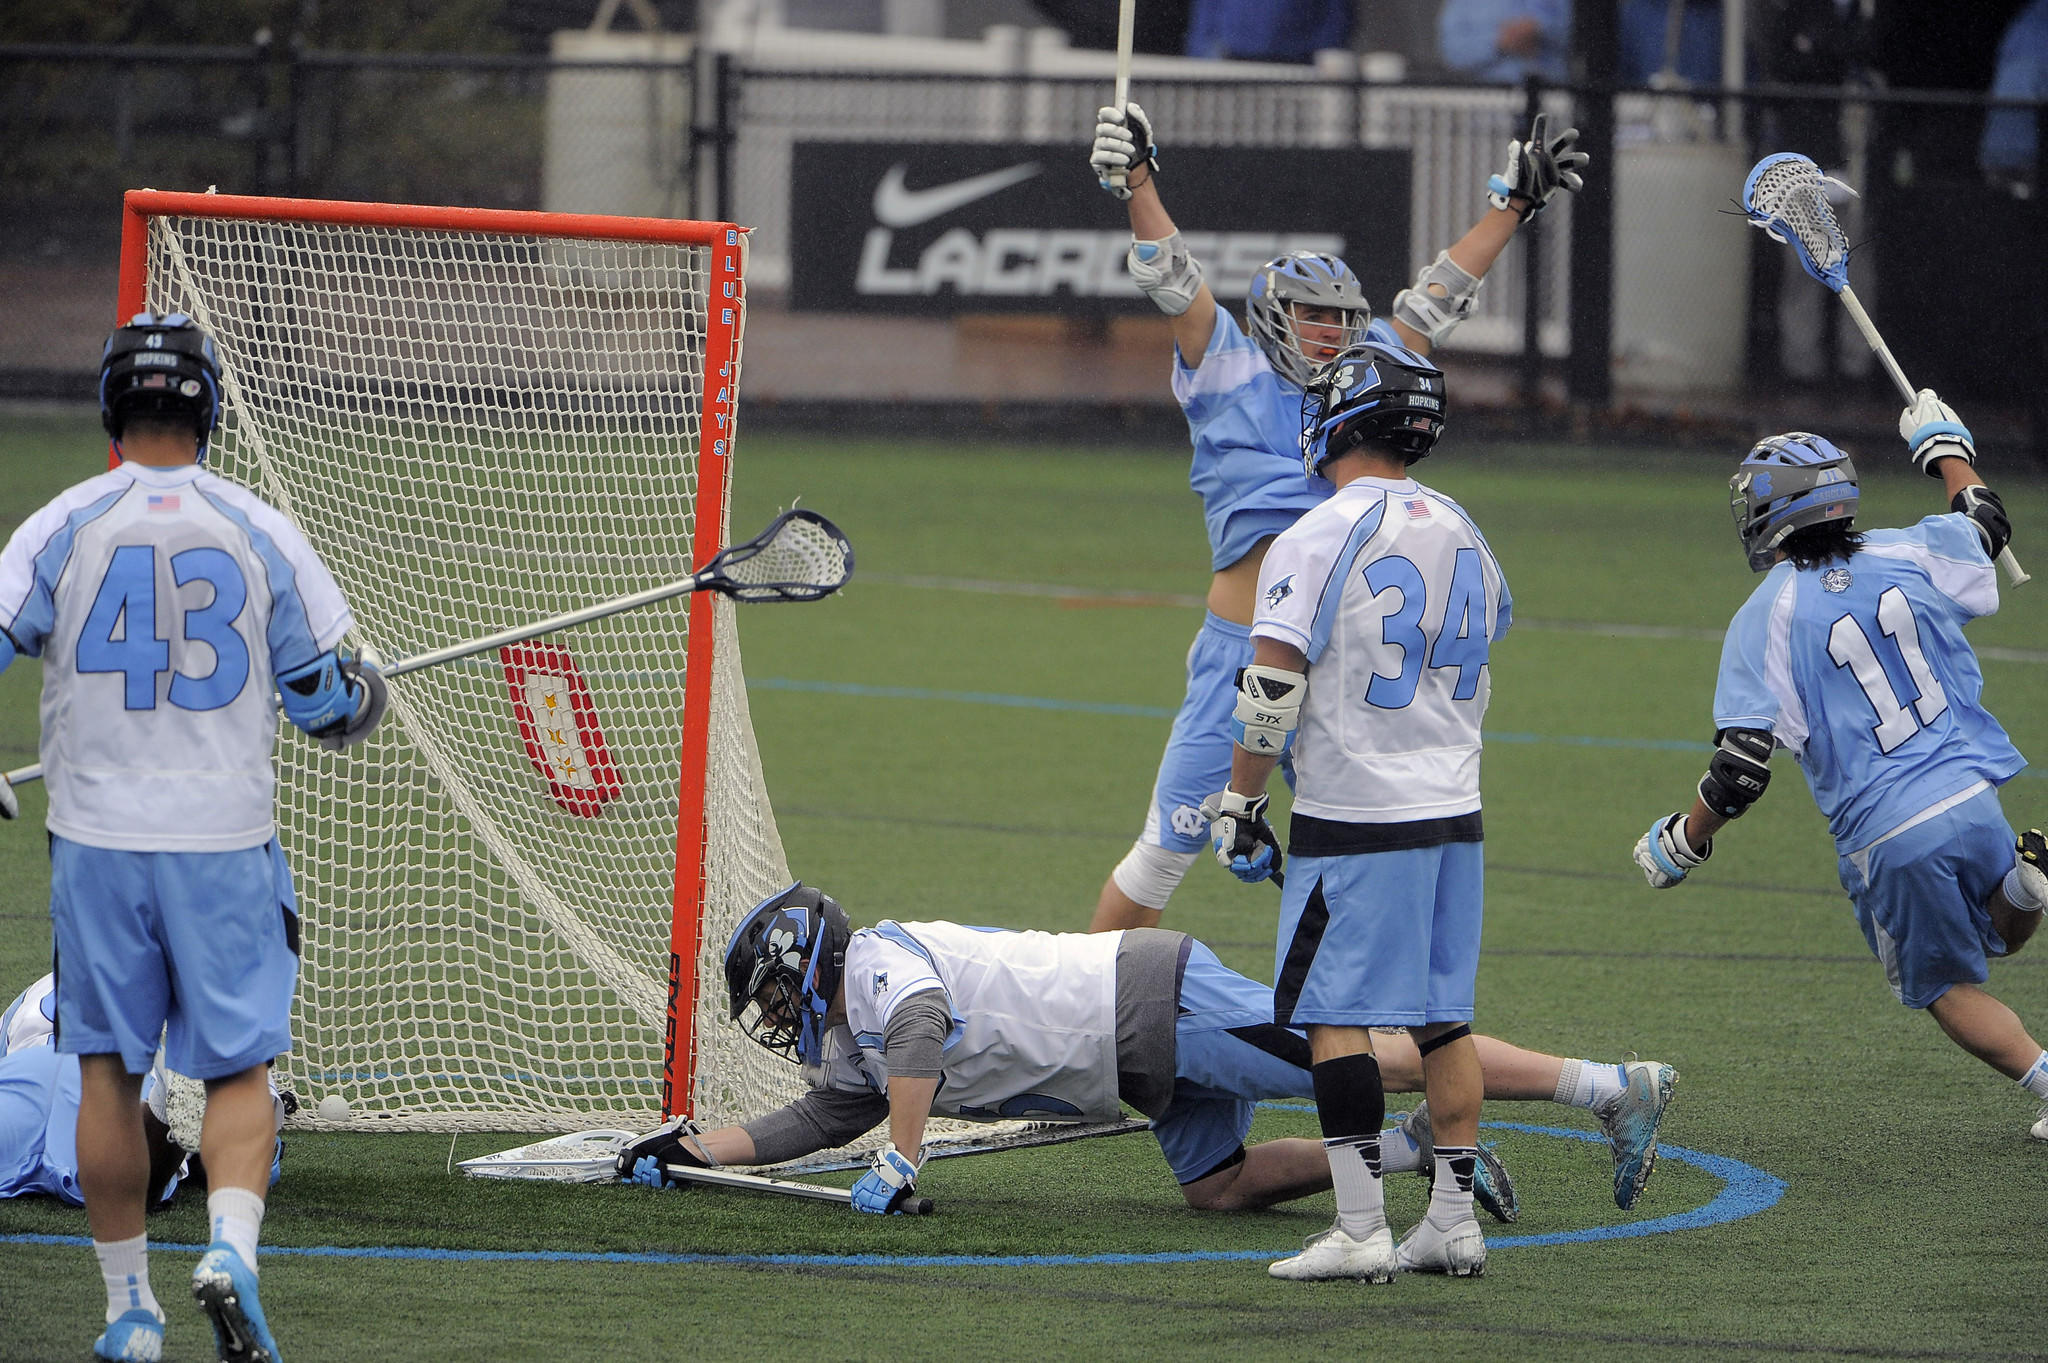 Johns Hopkins defender Jack Reilly (43) and long-stick midfielder Michael Pellegrino (34) watch goalie Eric Schneider (on ground) lunge at the ball, which rolls into the net as North Carolina attackman Joey Sankey (11) runs to celebrate his goal with attackman Jimmy Bitter.